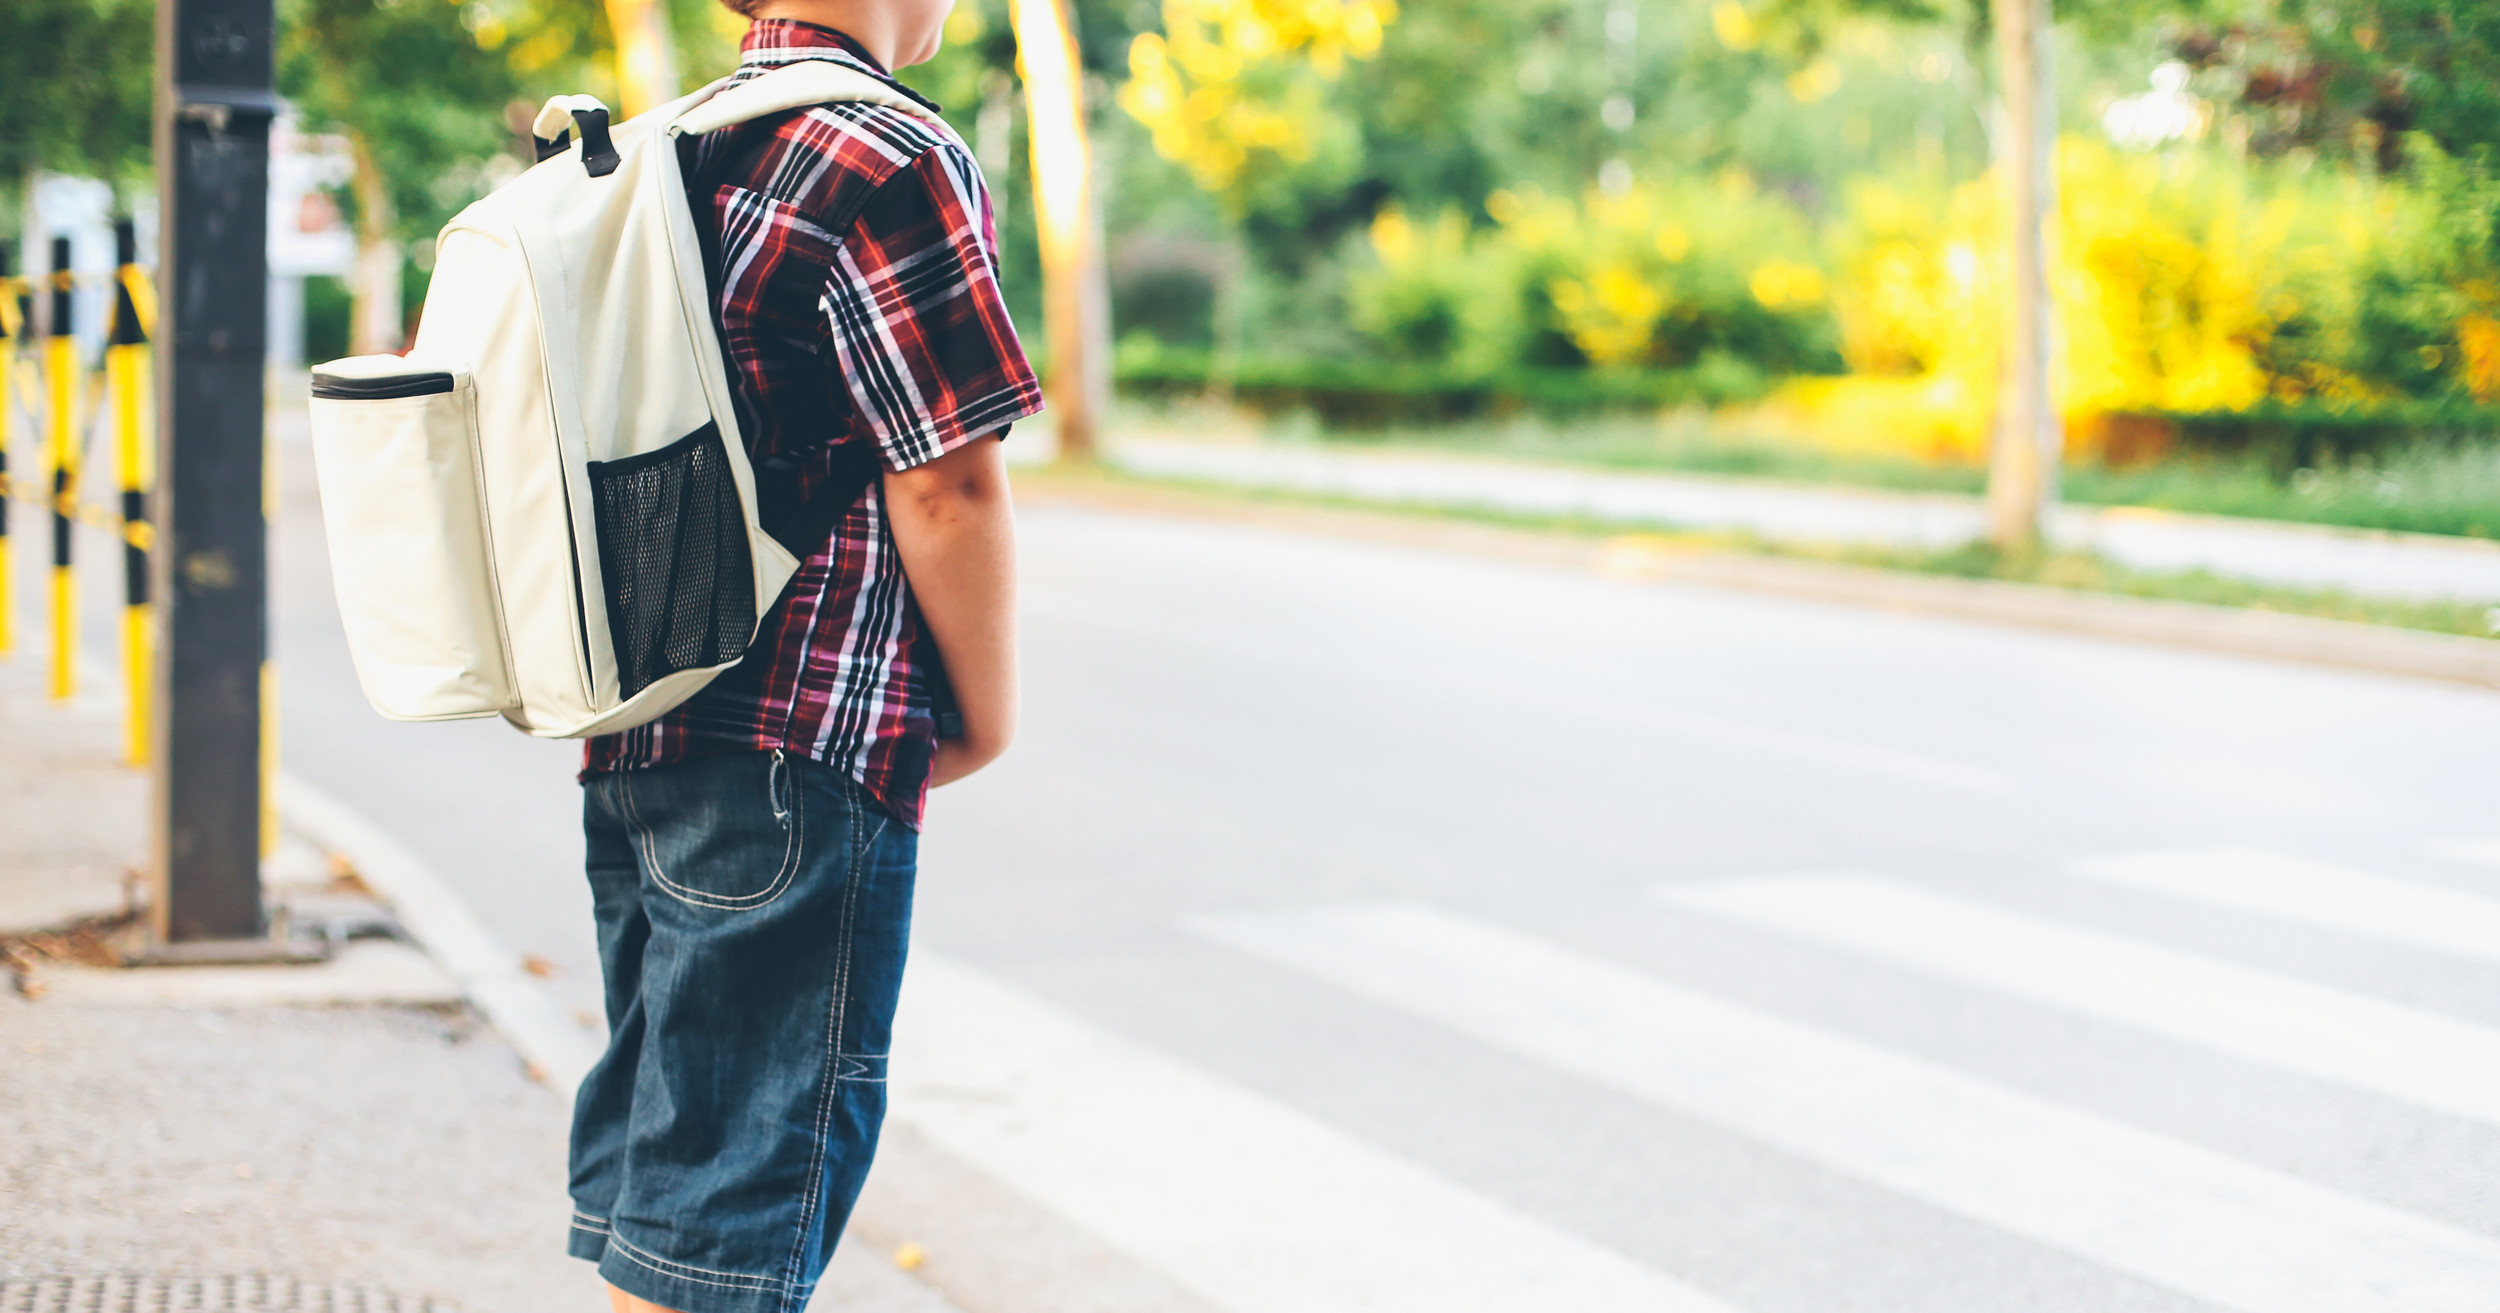 Money-smart tips for back-to-school shopping